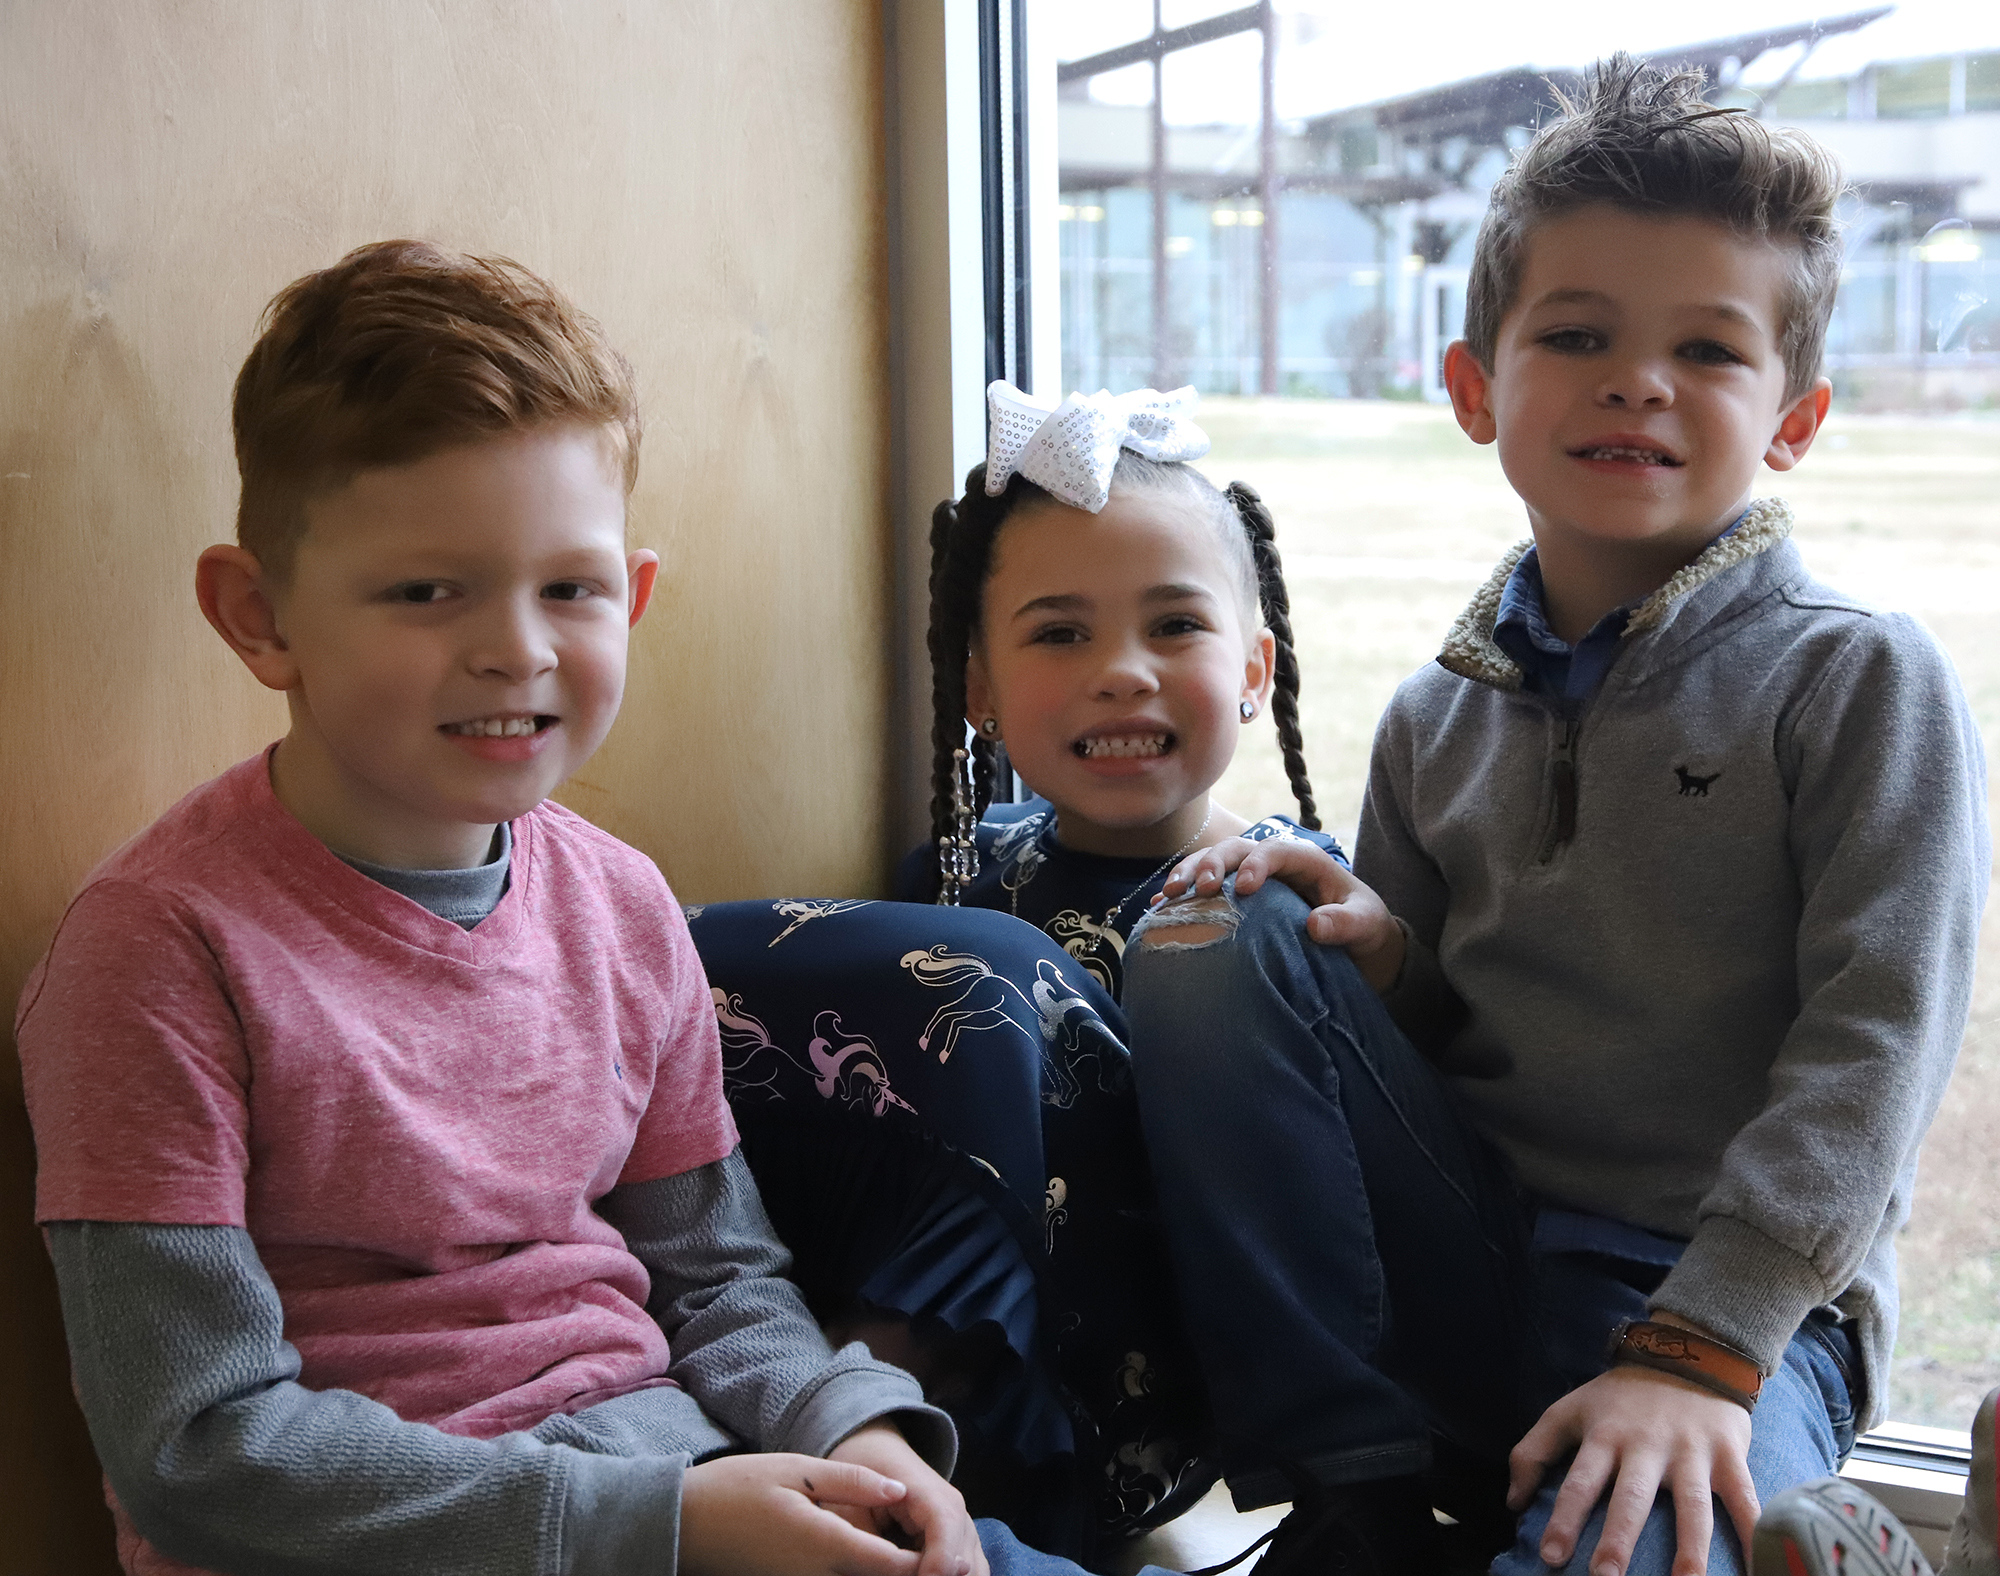 Three current kindergarten students smile while posing in a window.